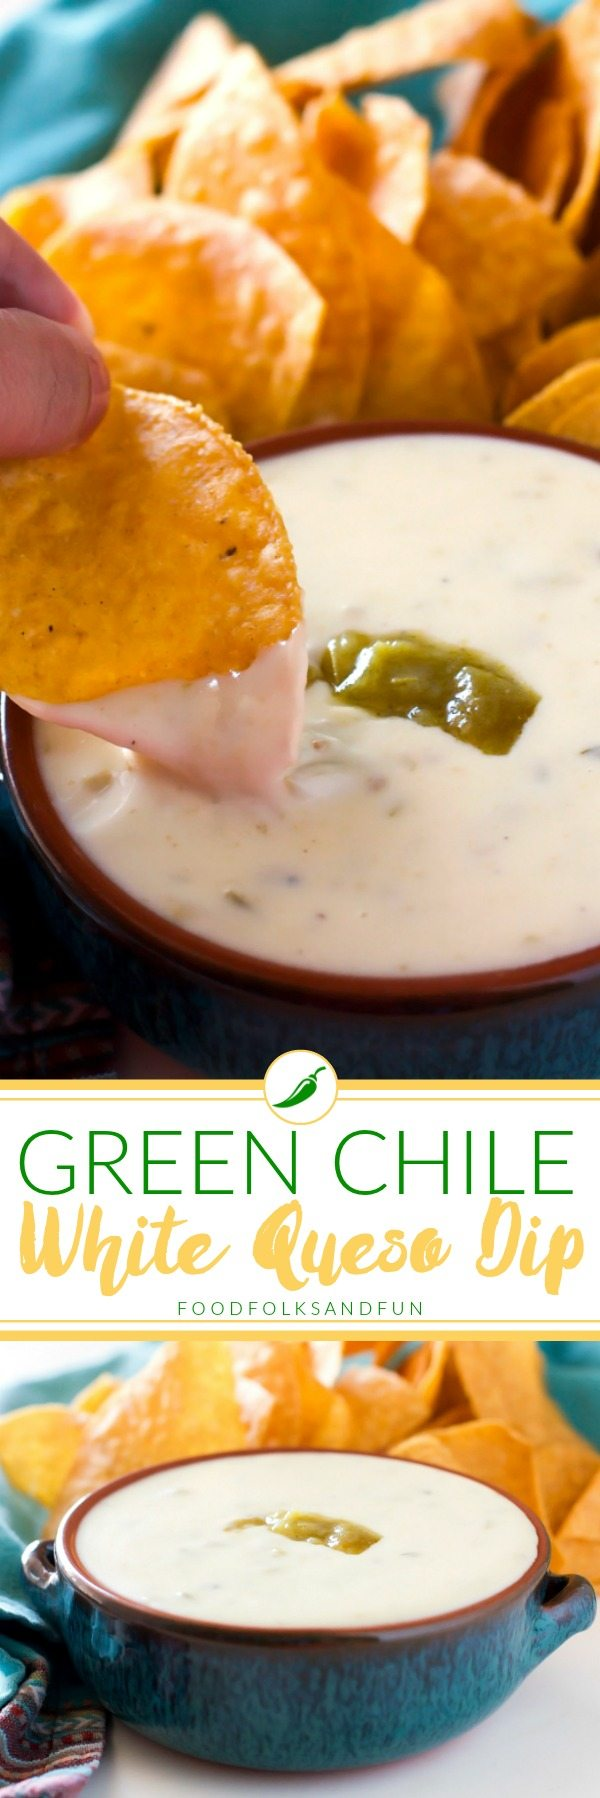 This homemade Green Chile White Queso Dip is incredibly easy to make and SO delicious! All you need is 5 minutes and 5 ingredients!